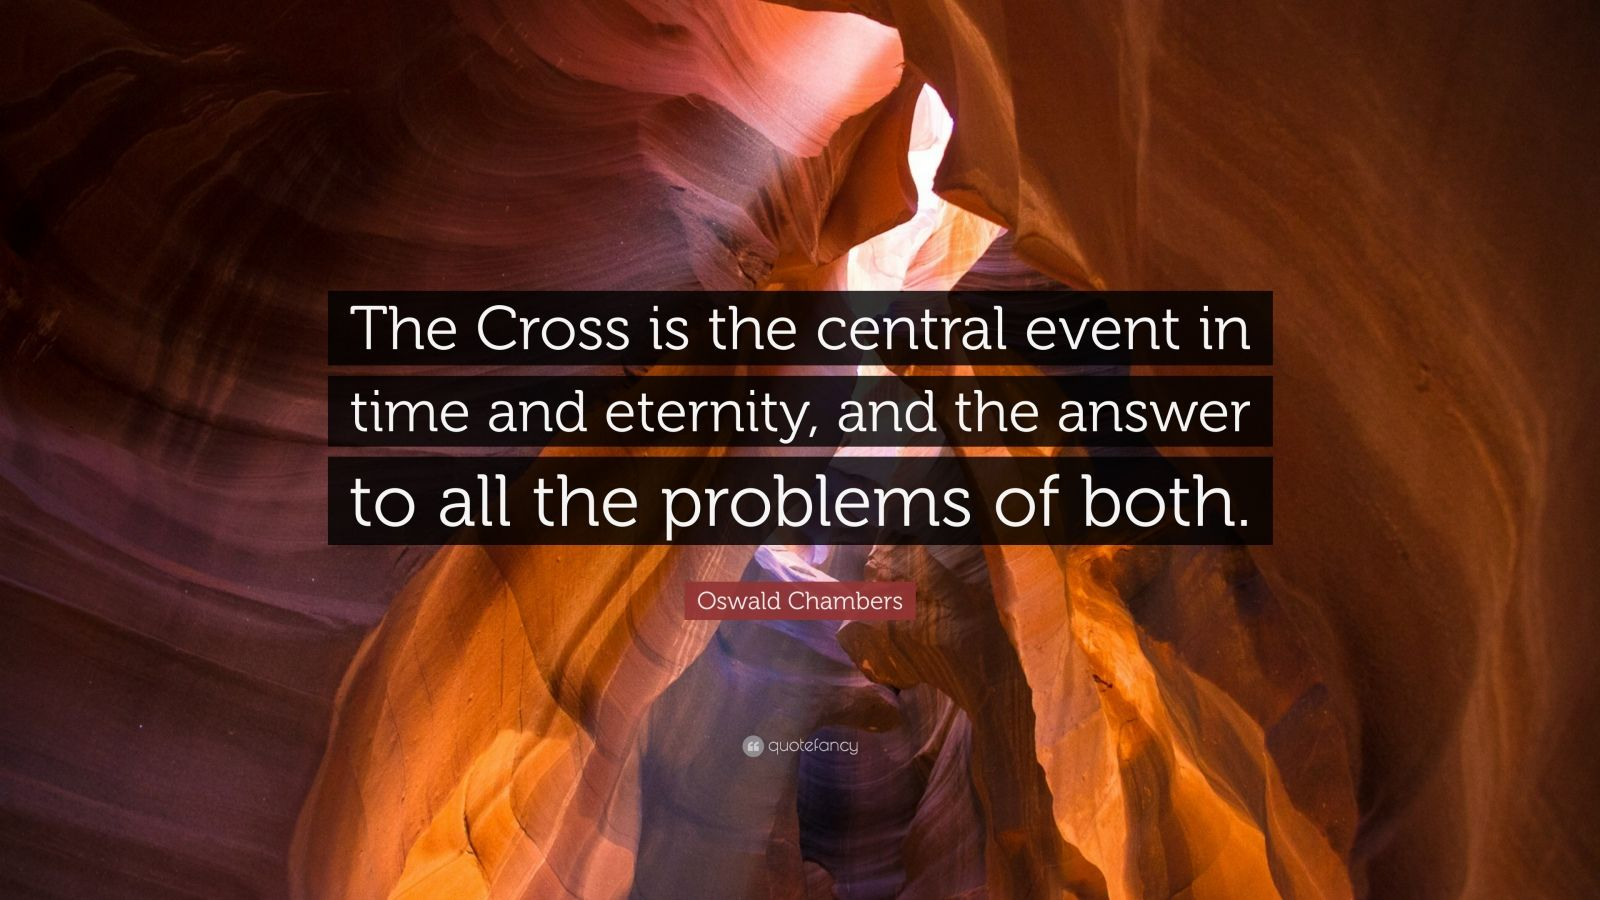 """Oswald Chambers Quote: """"The Cross is the central event in time and eternity, and the answer to all the problems of both."""""""